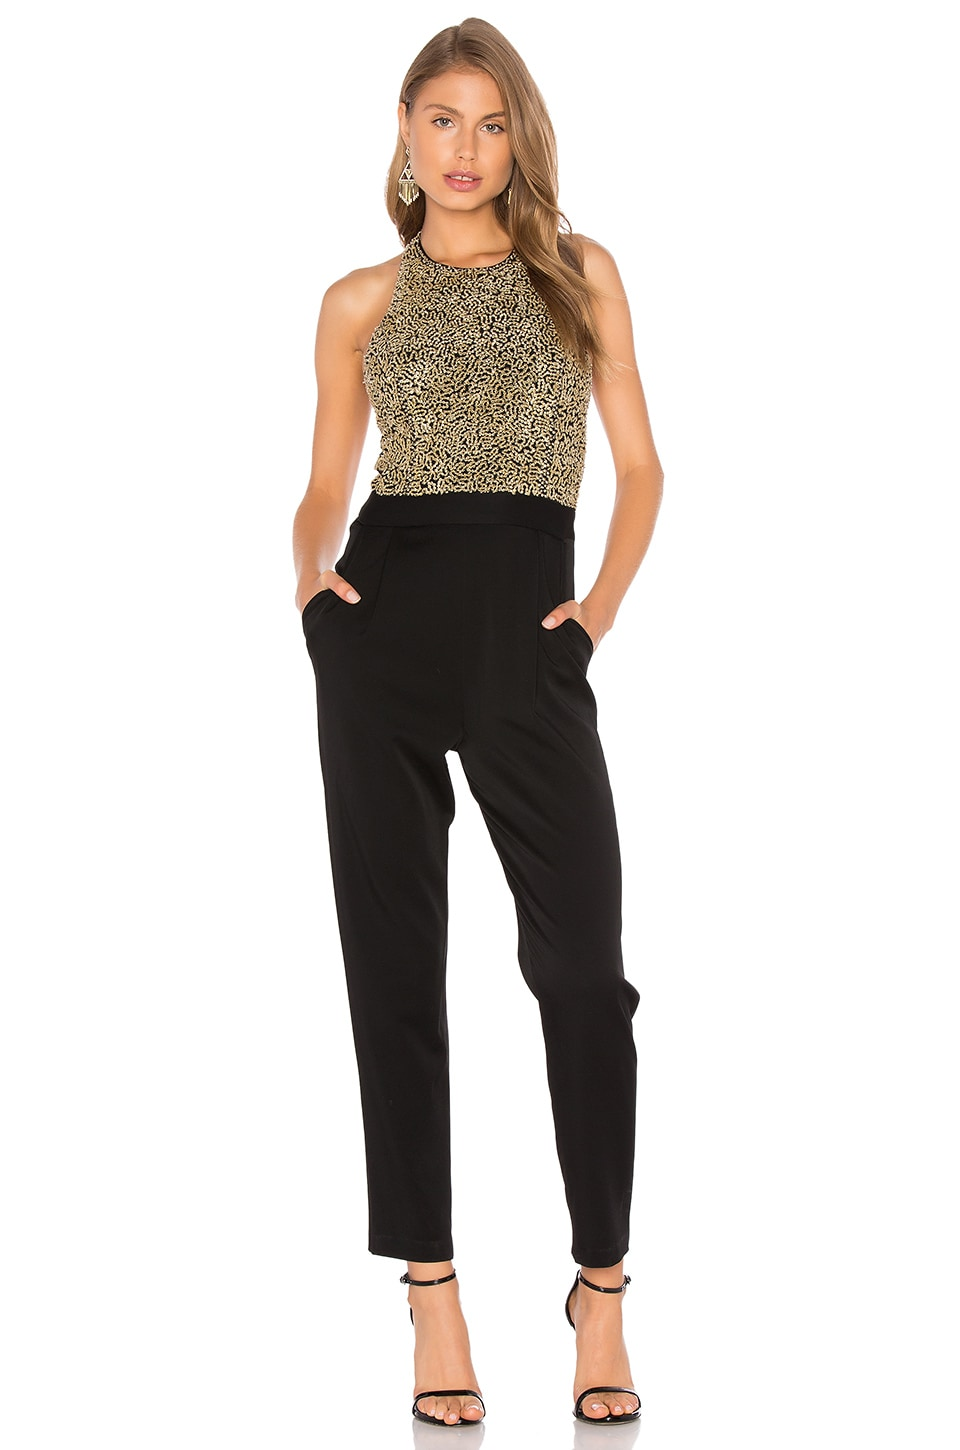 Buy Alyce Paris Women's Jumpsuit In Black Gold. Similar products also available. SALE now on!Price: $